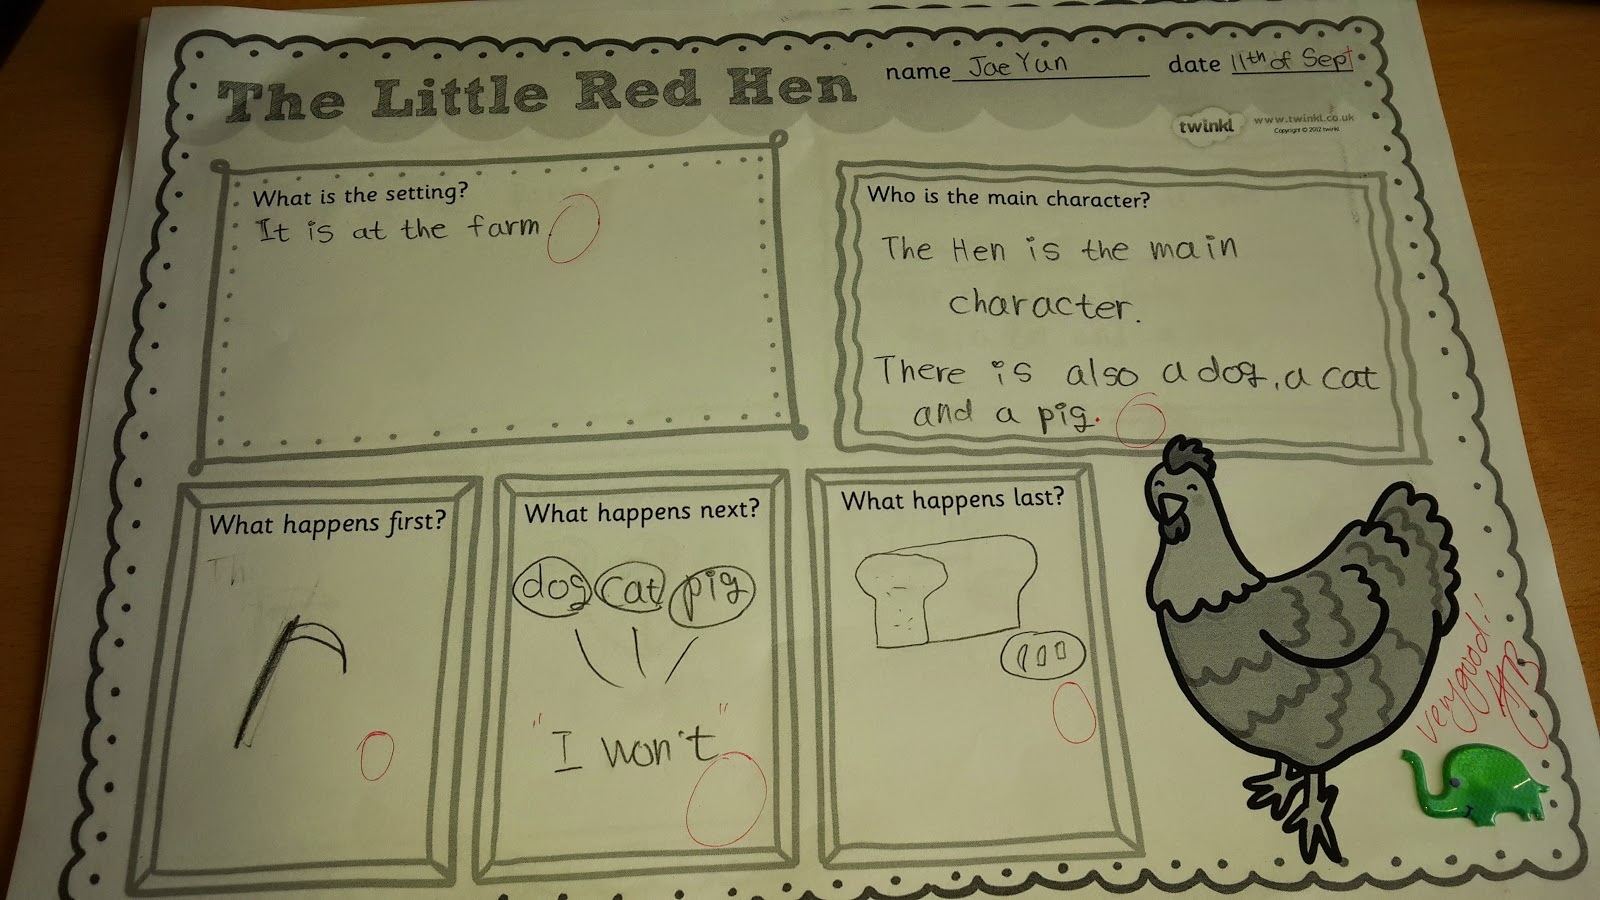 The Little Red Hen Storytime Comprehension And Crafting